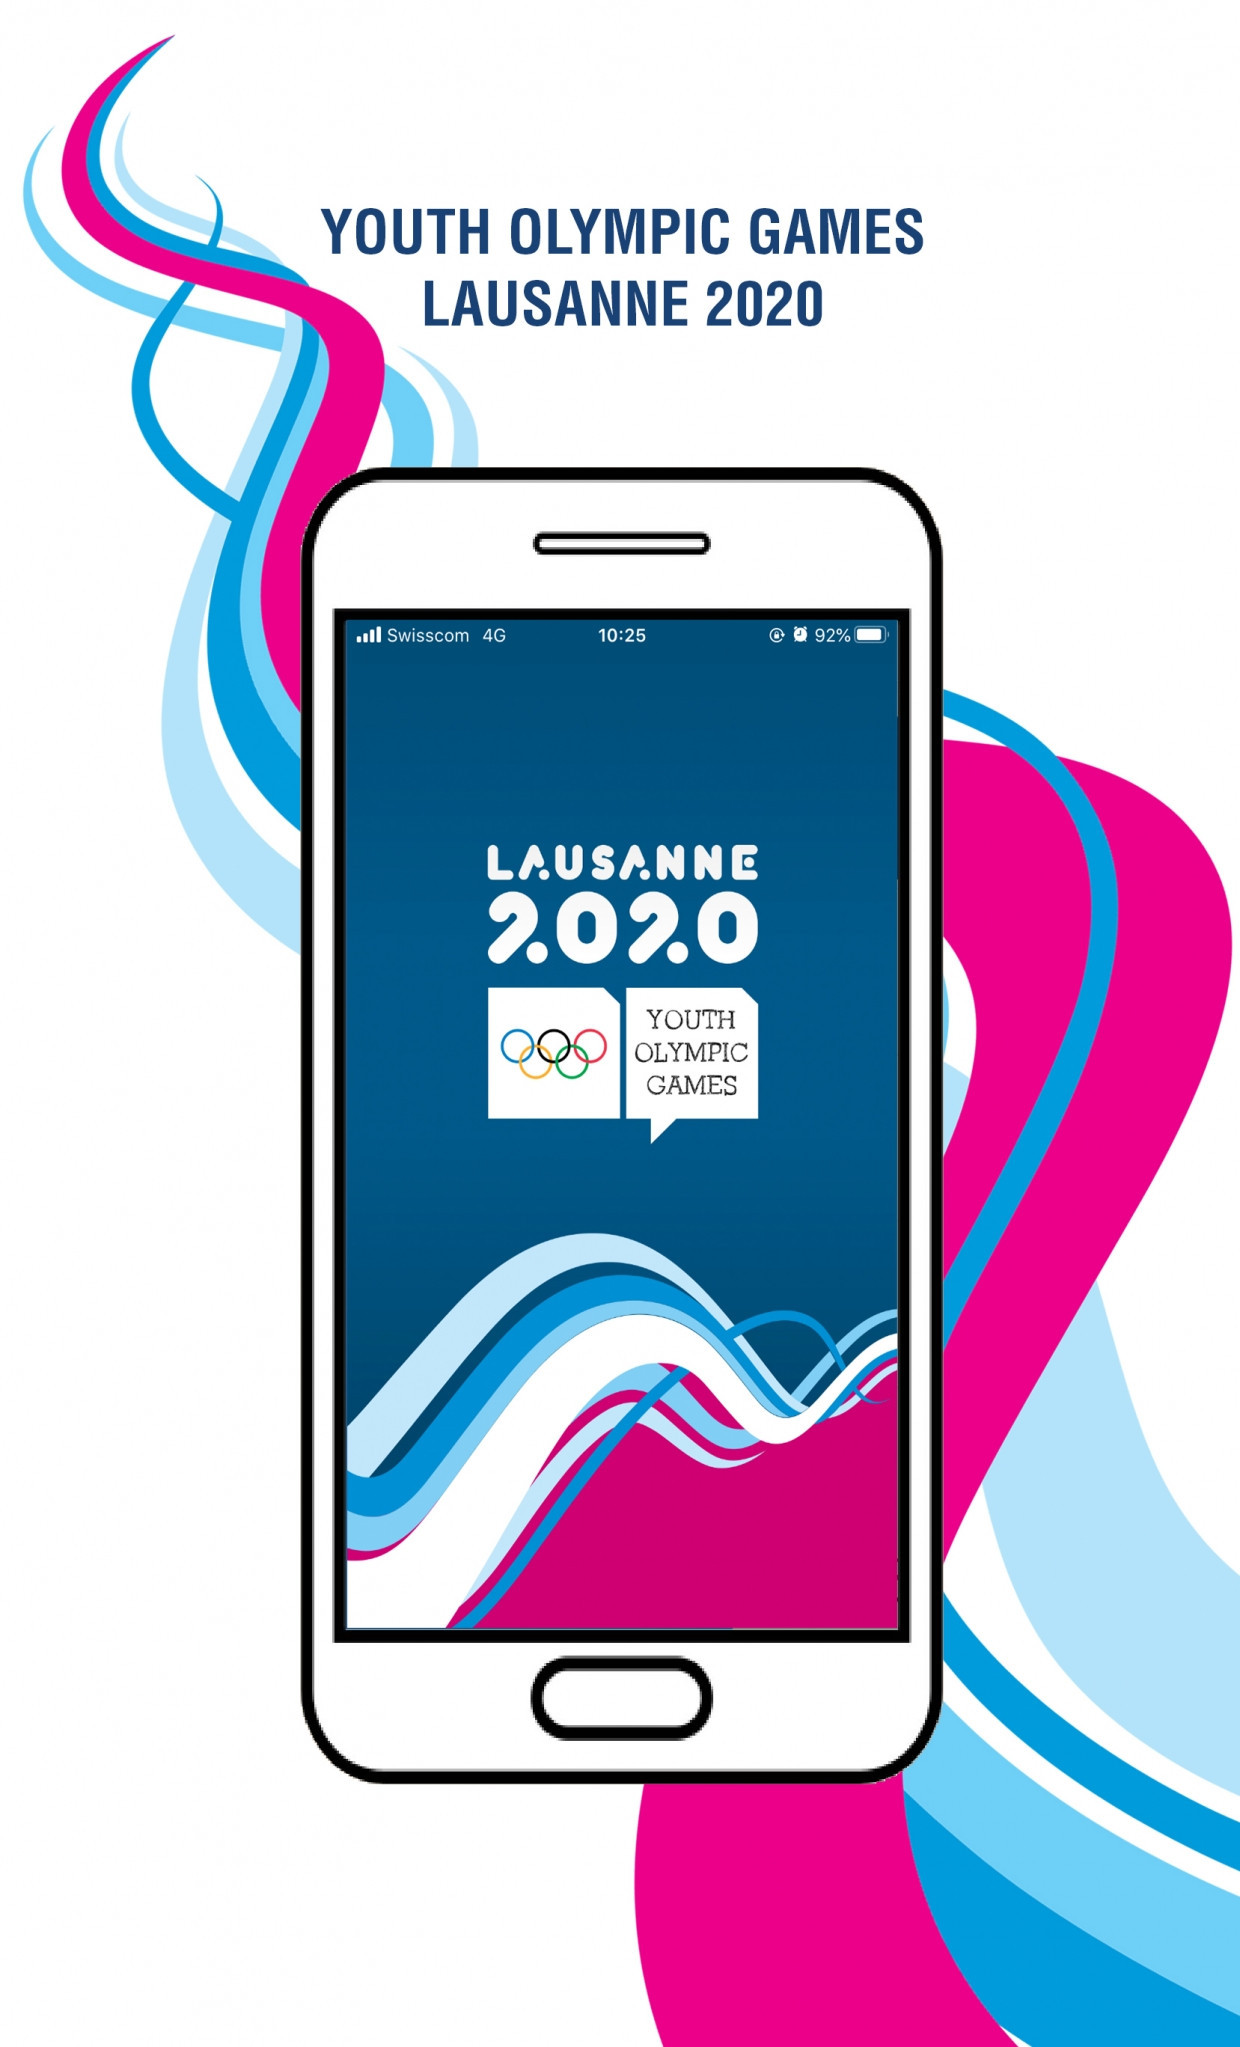 Lausanne 2020 has launched its mobile app ©Lausanne 2020